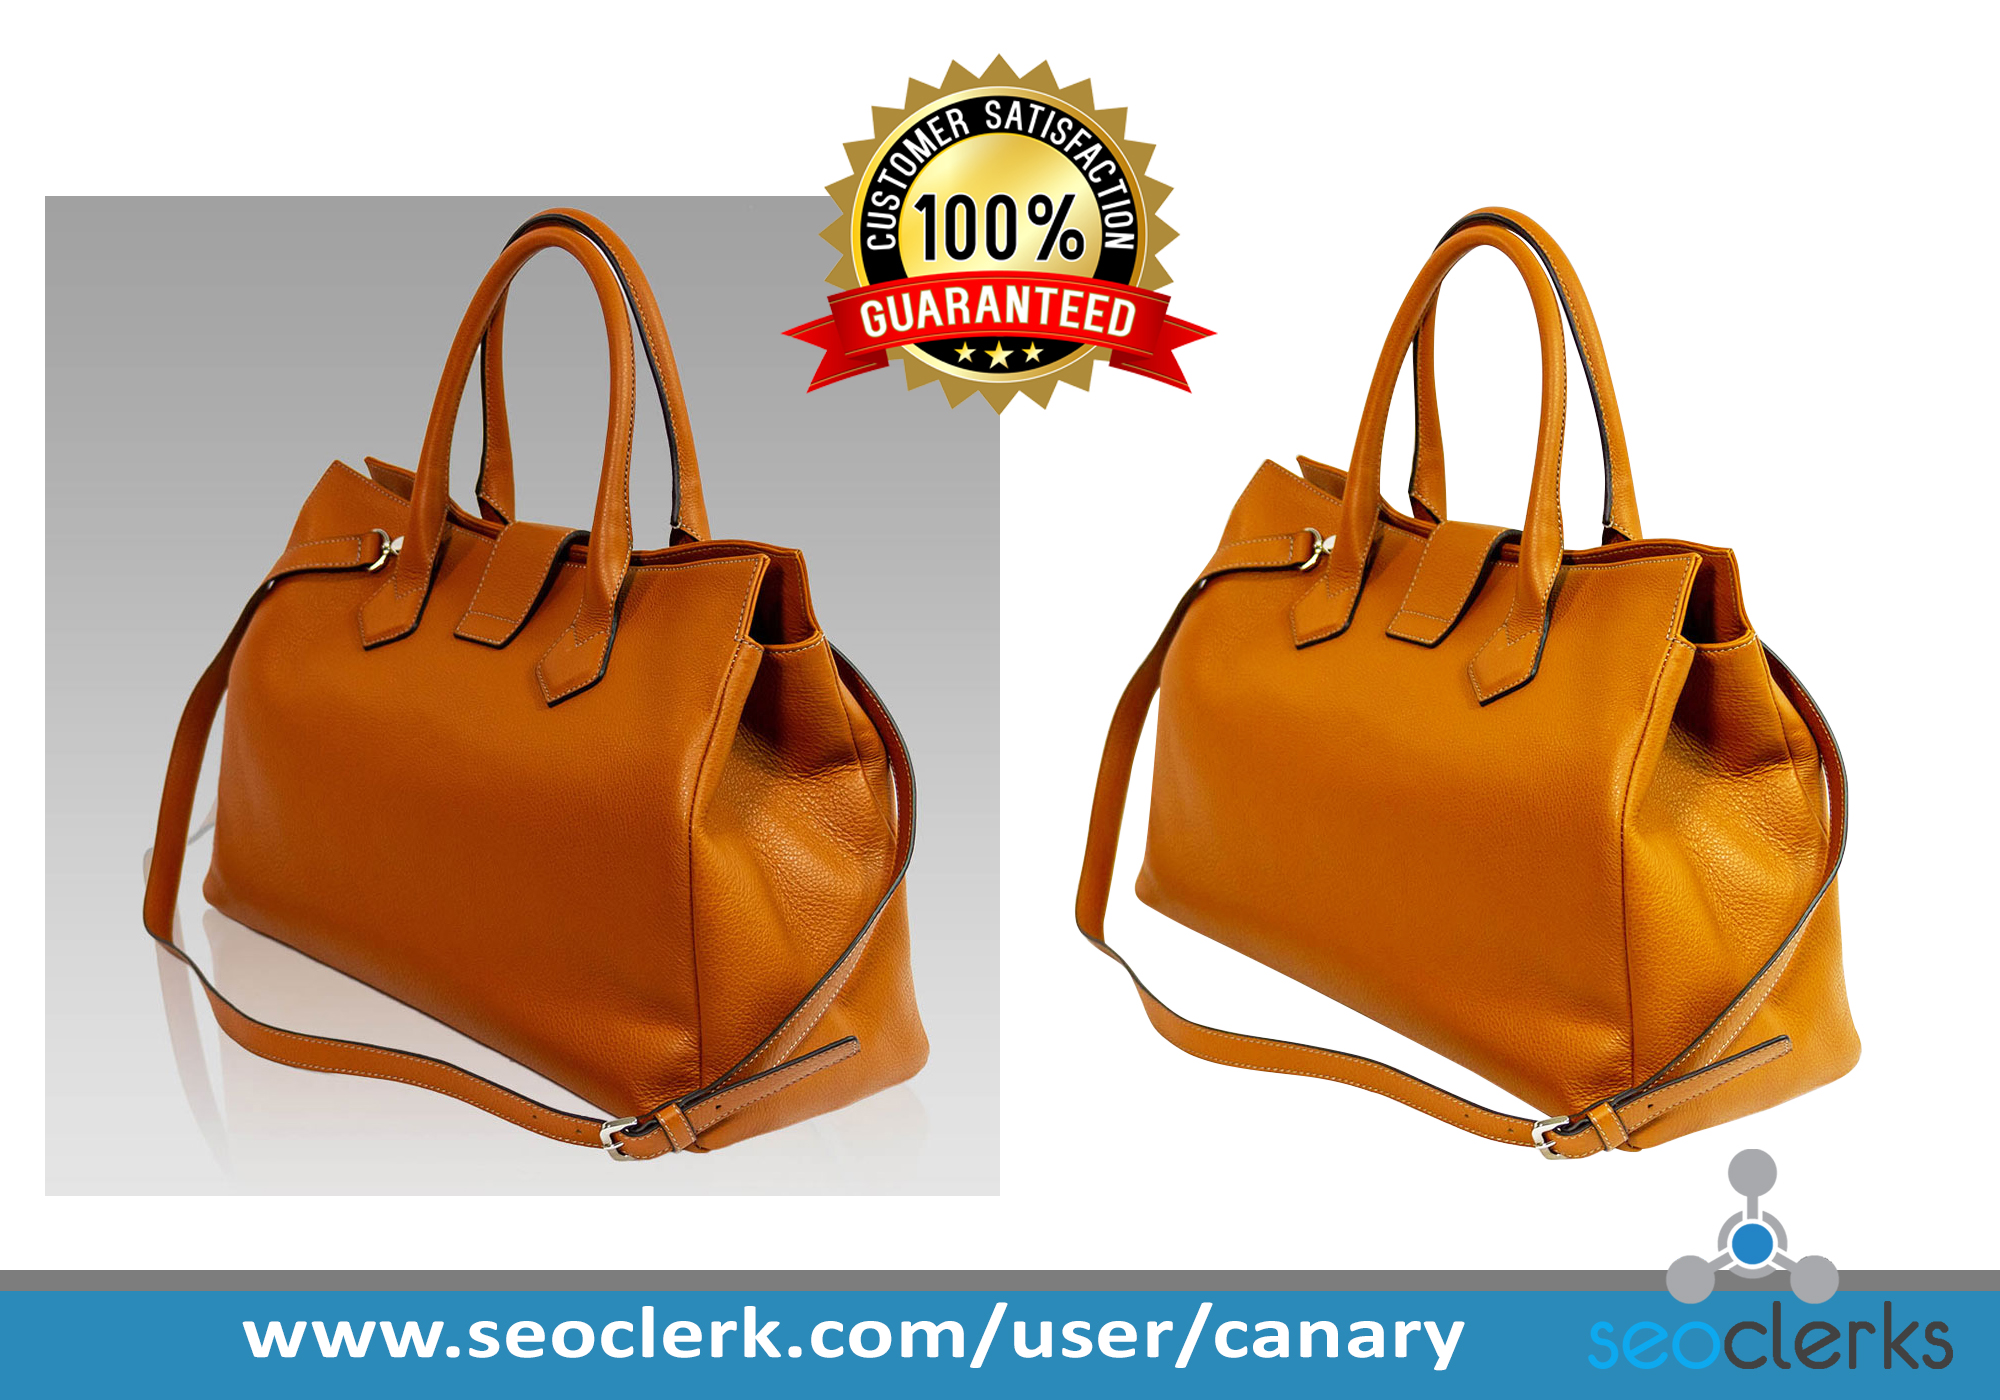 E-commerce image editing, background removal, clipping path etc.